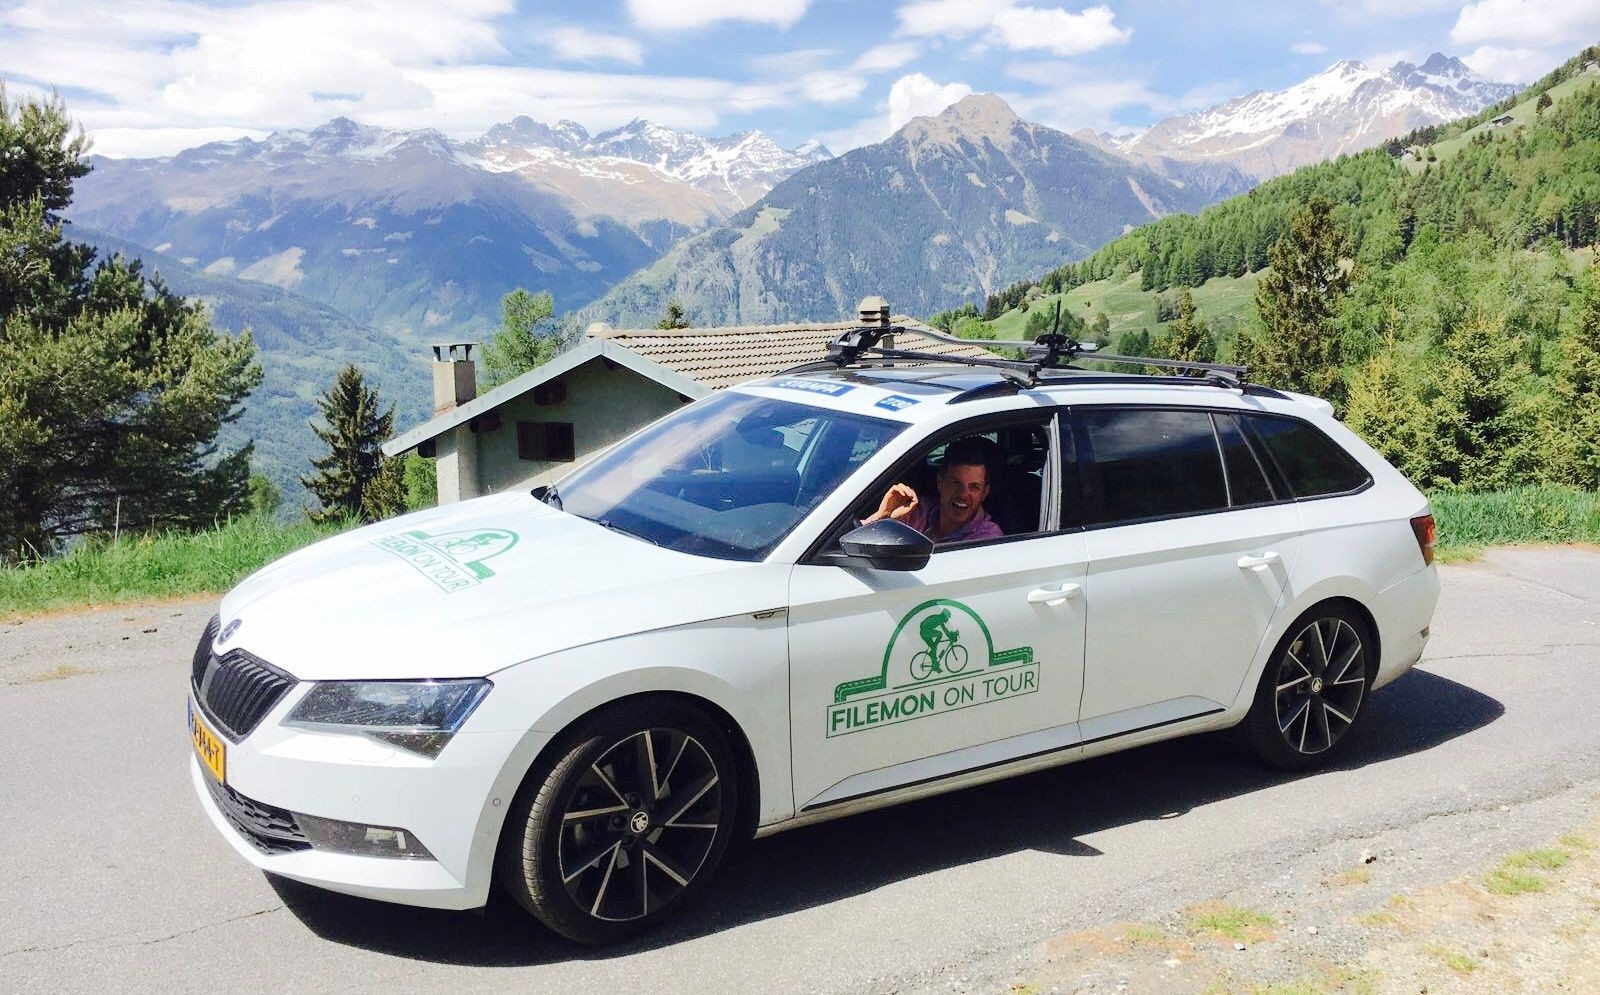 Filemon Wesselink volgt in een ŠKODA SUPERB COMBI Sportline de wielerrondes van dichtbij voor 'Filemon on Tour'